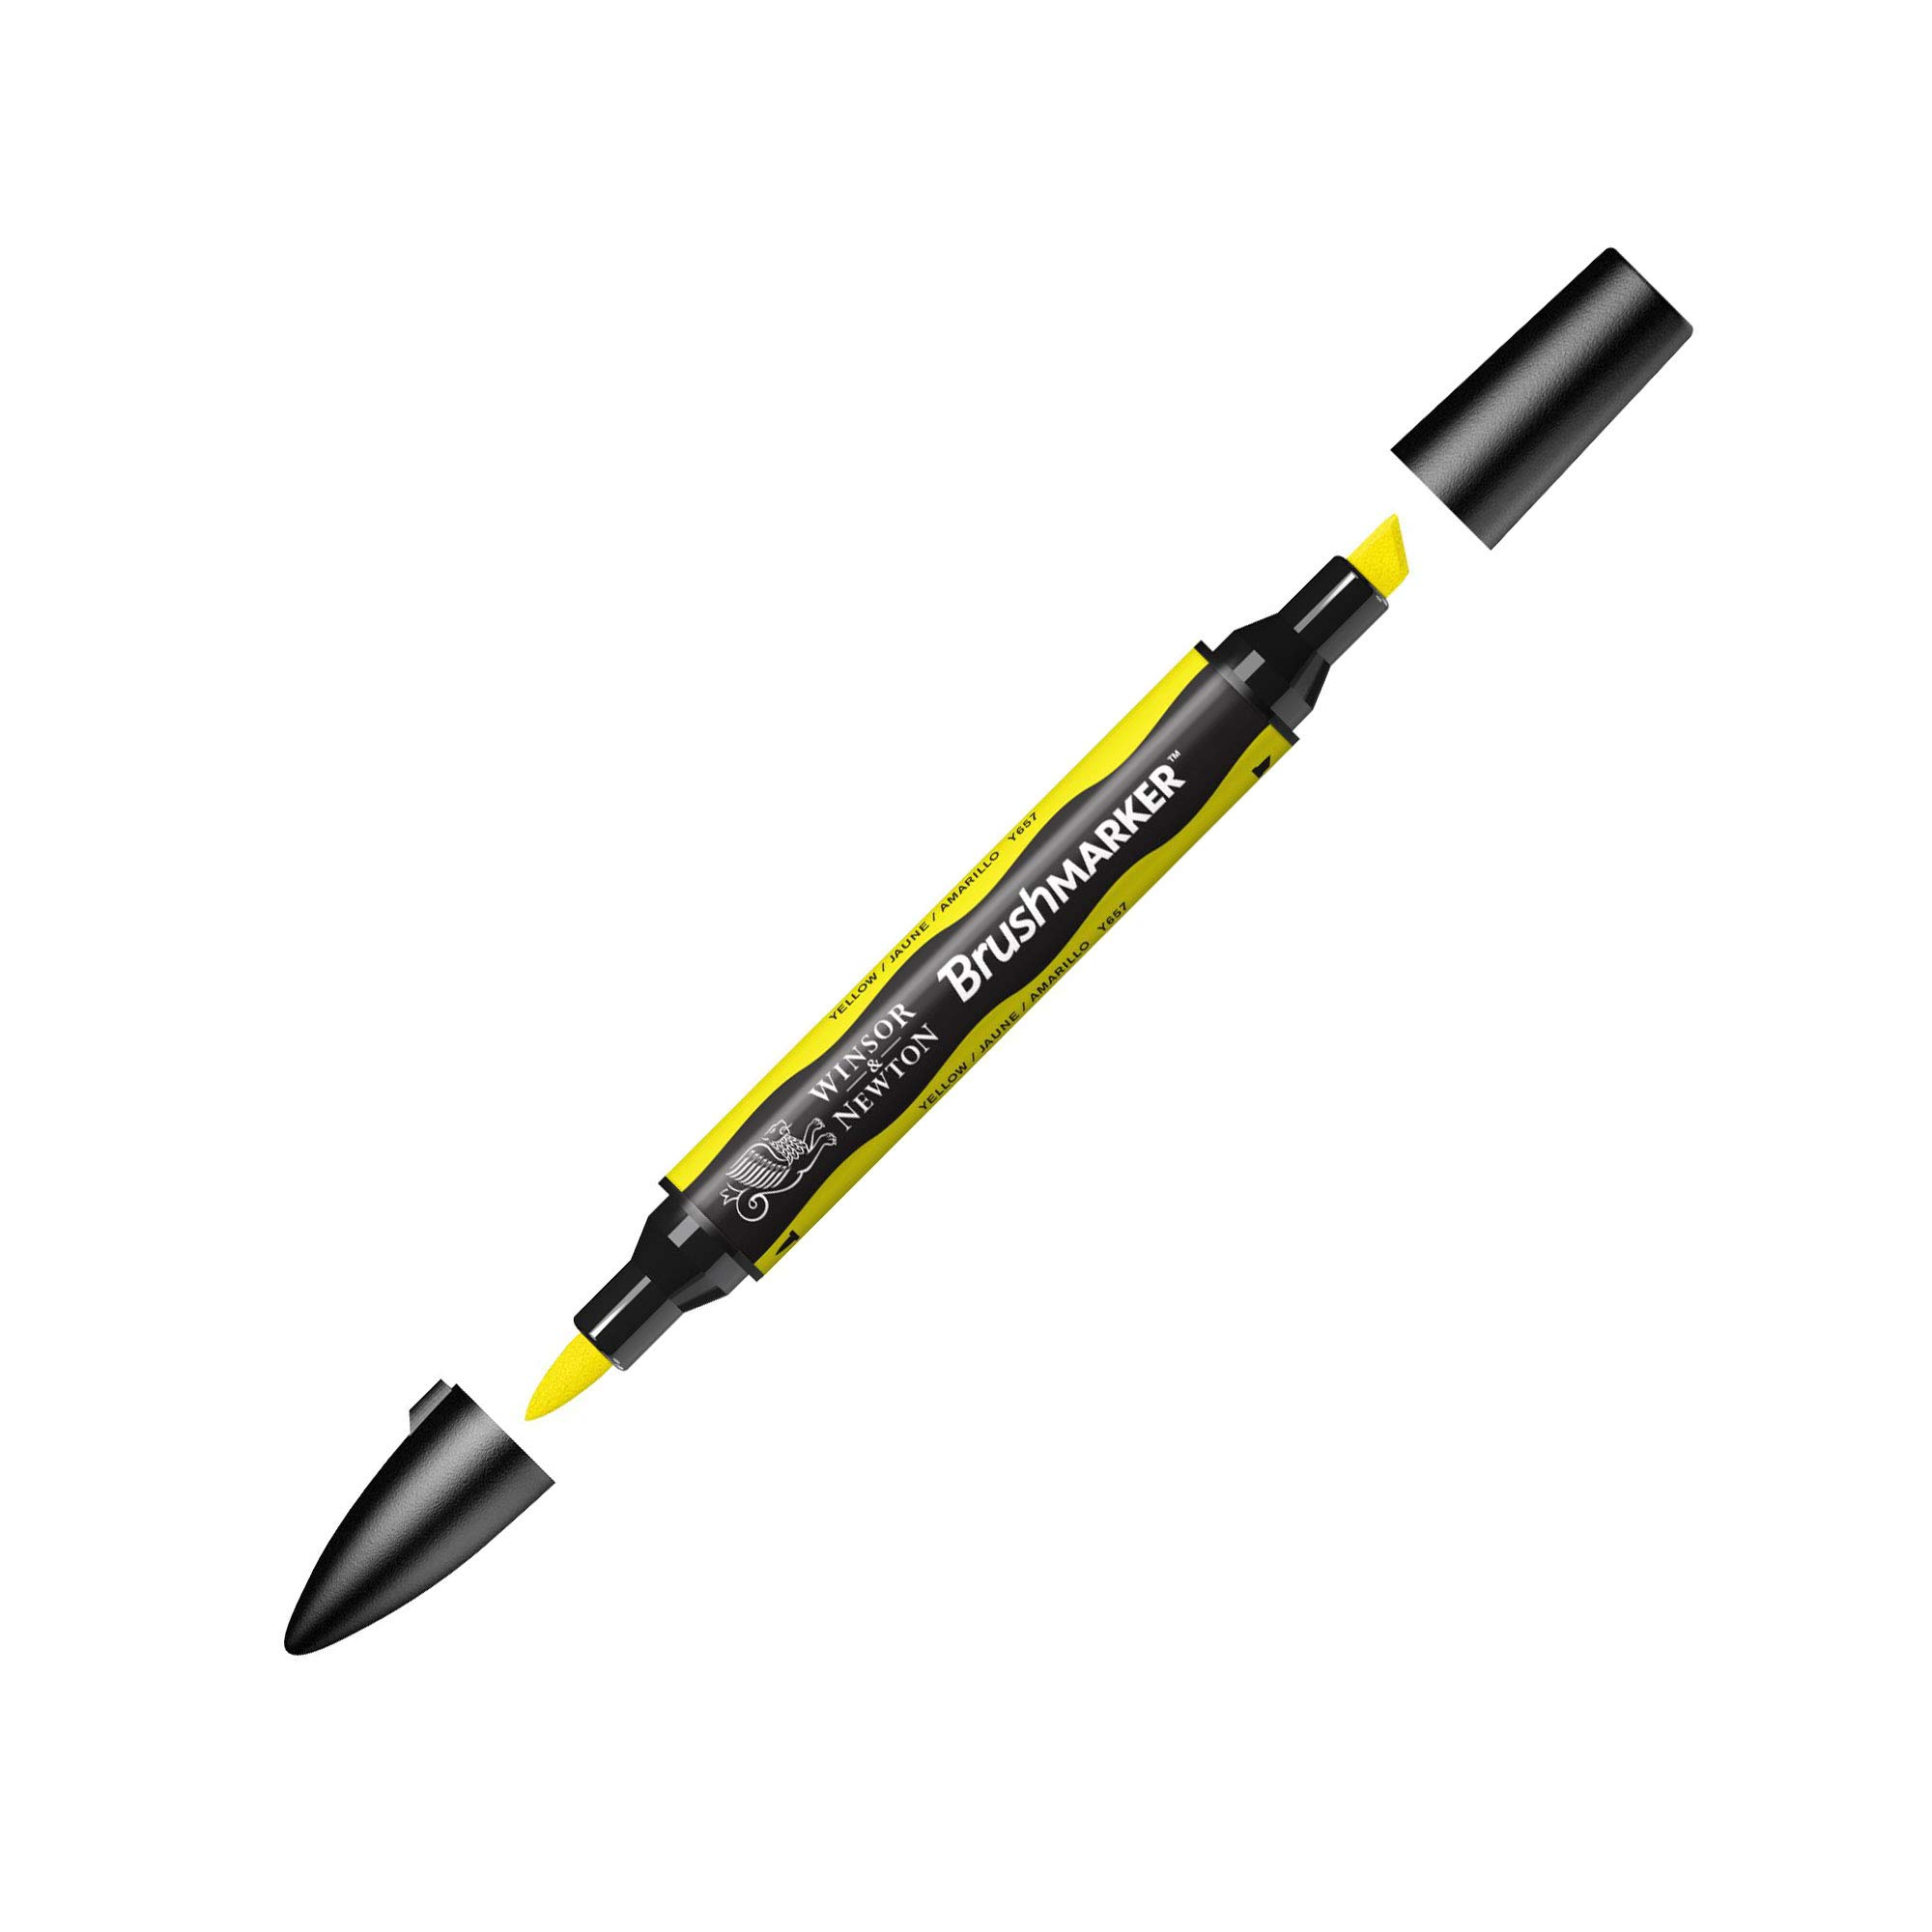 Winsor & Newton BrushMarker, Yellow